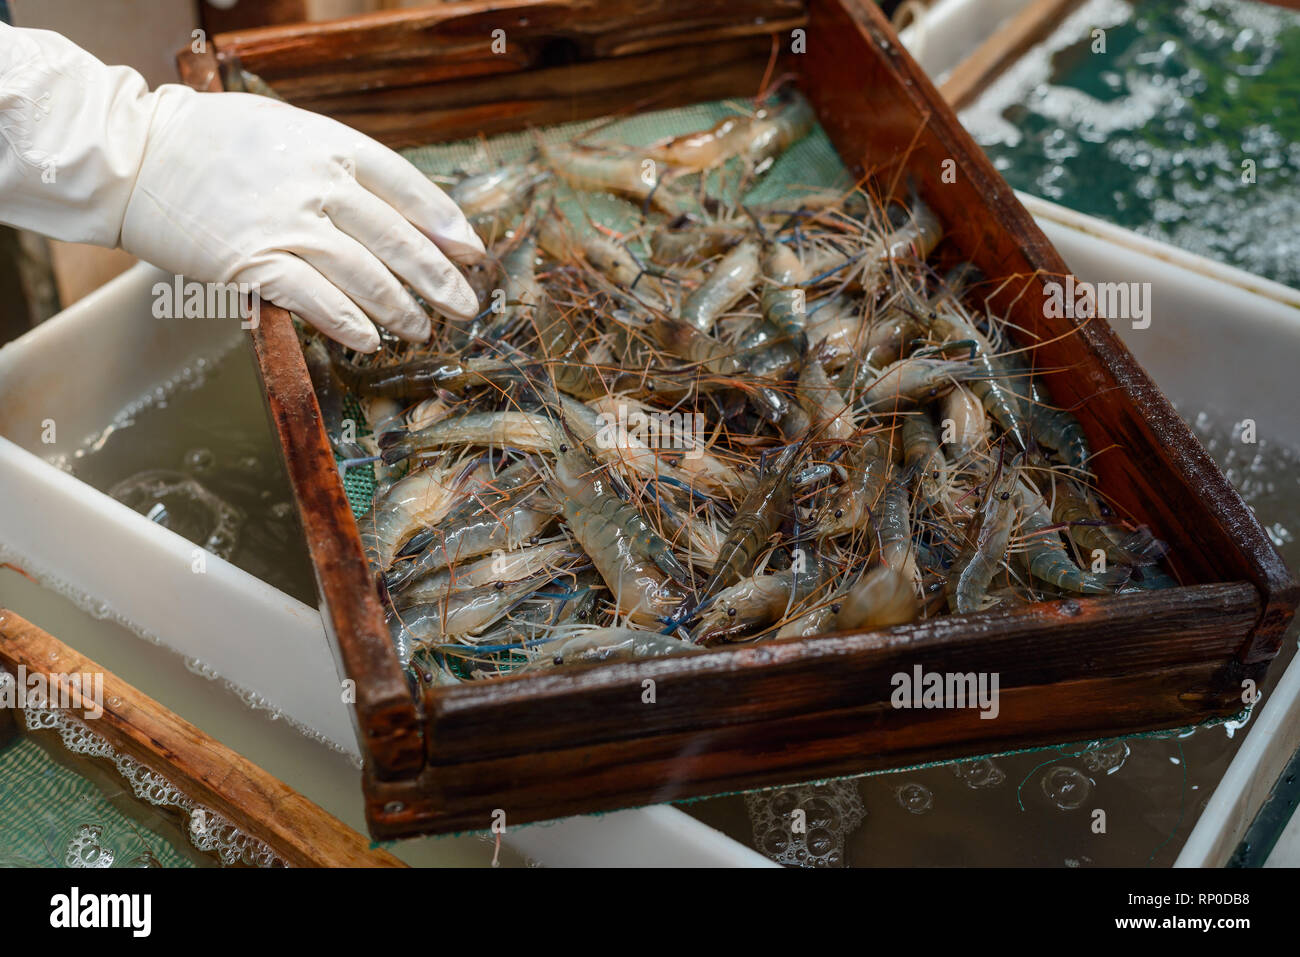 Worker washing shrimps in sifter - Stock Image